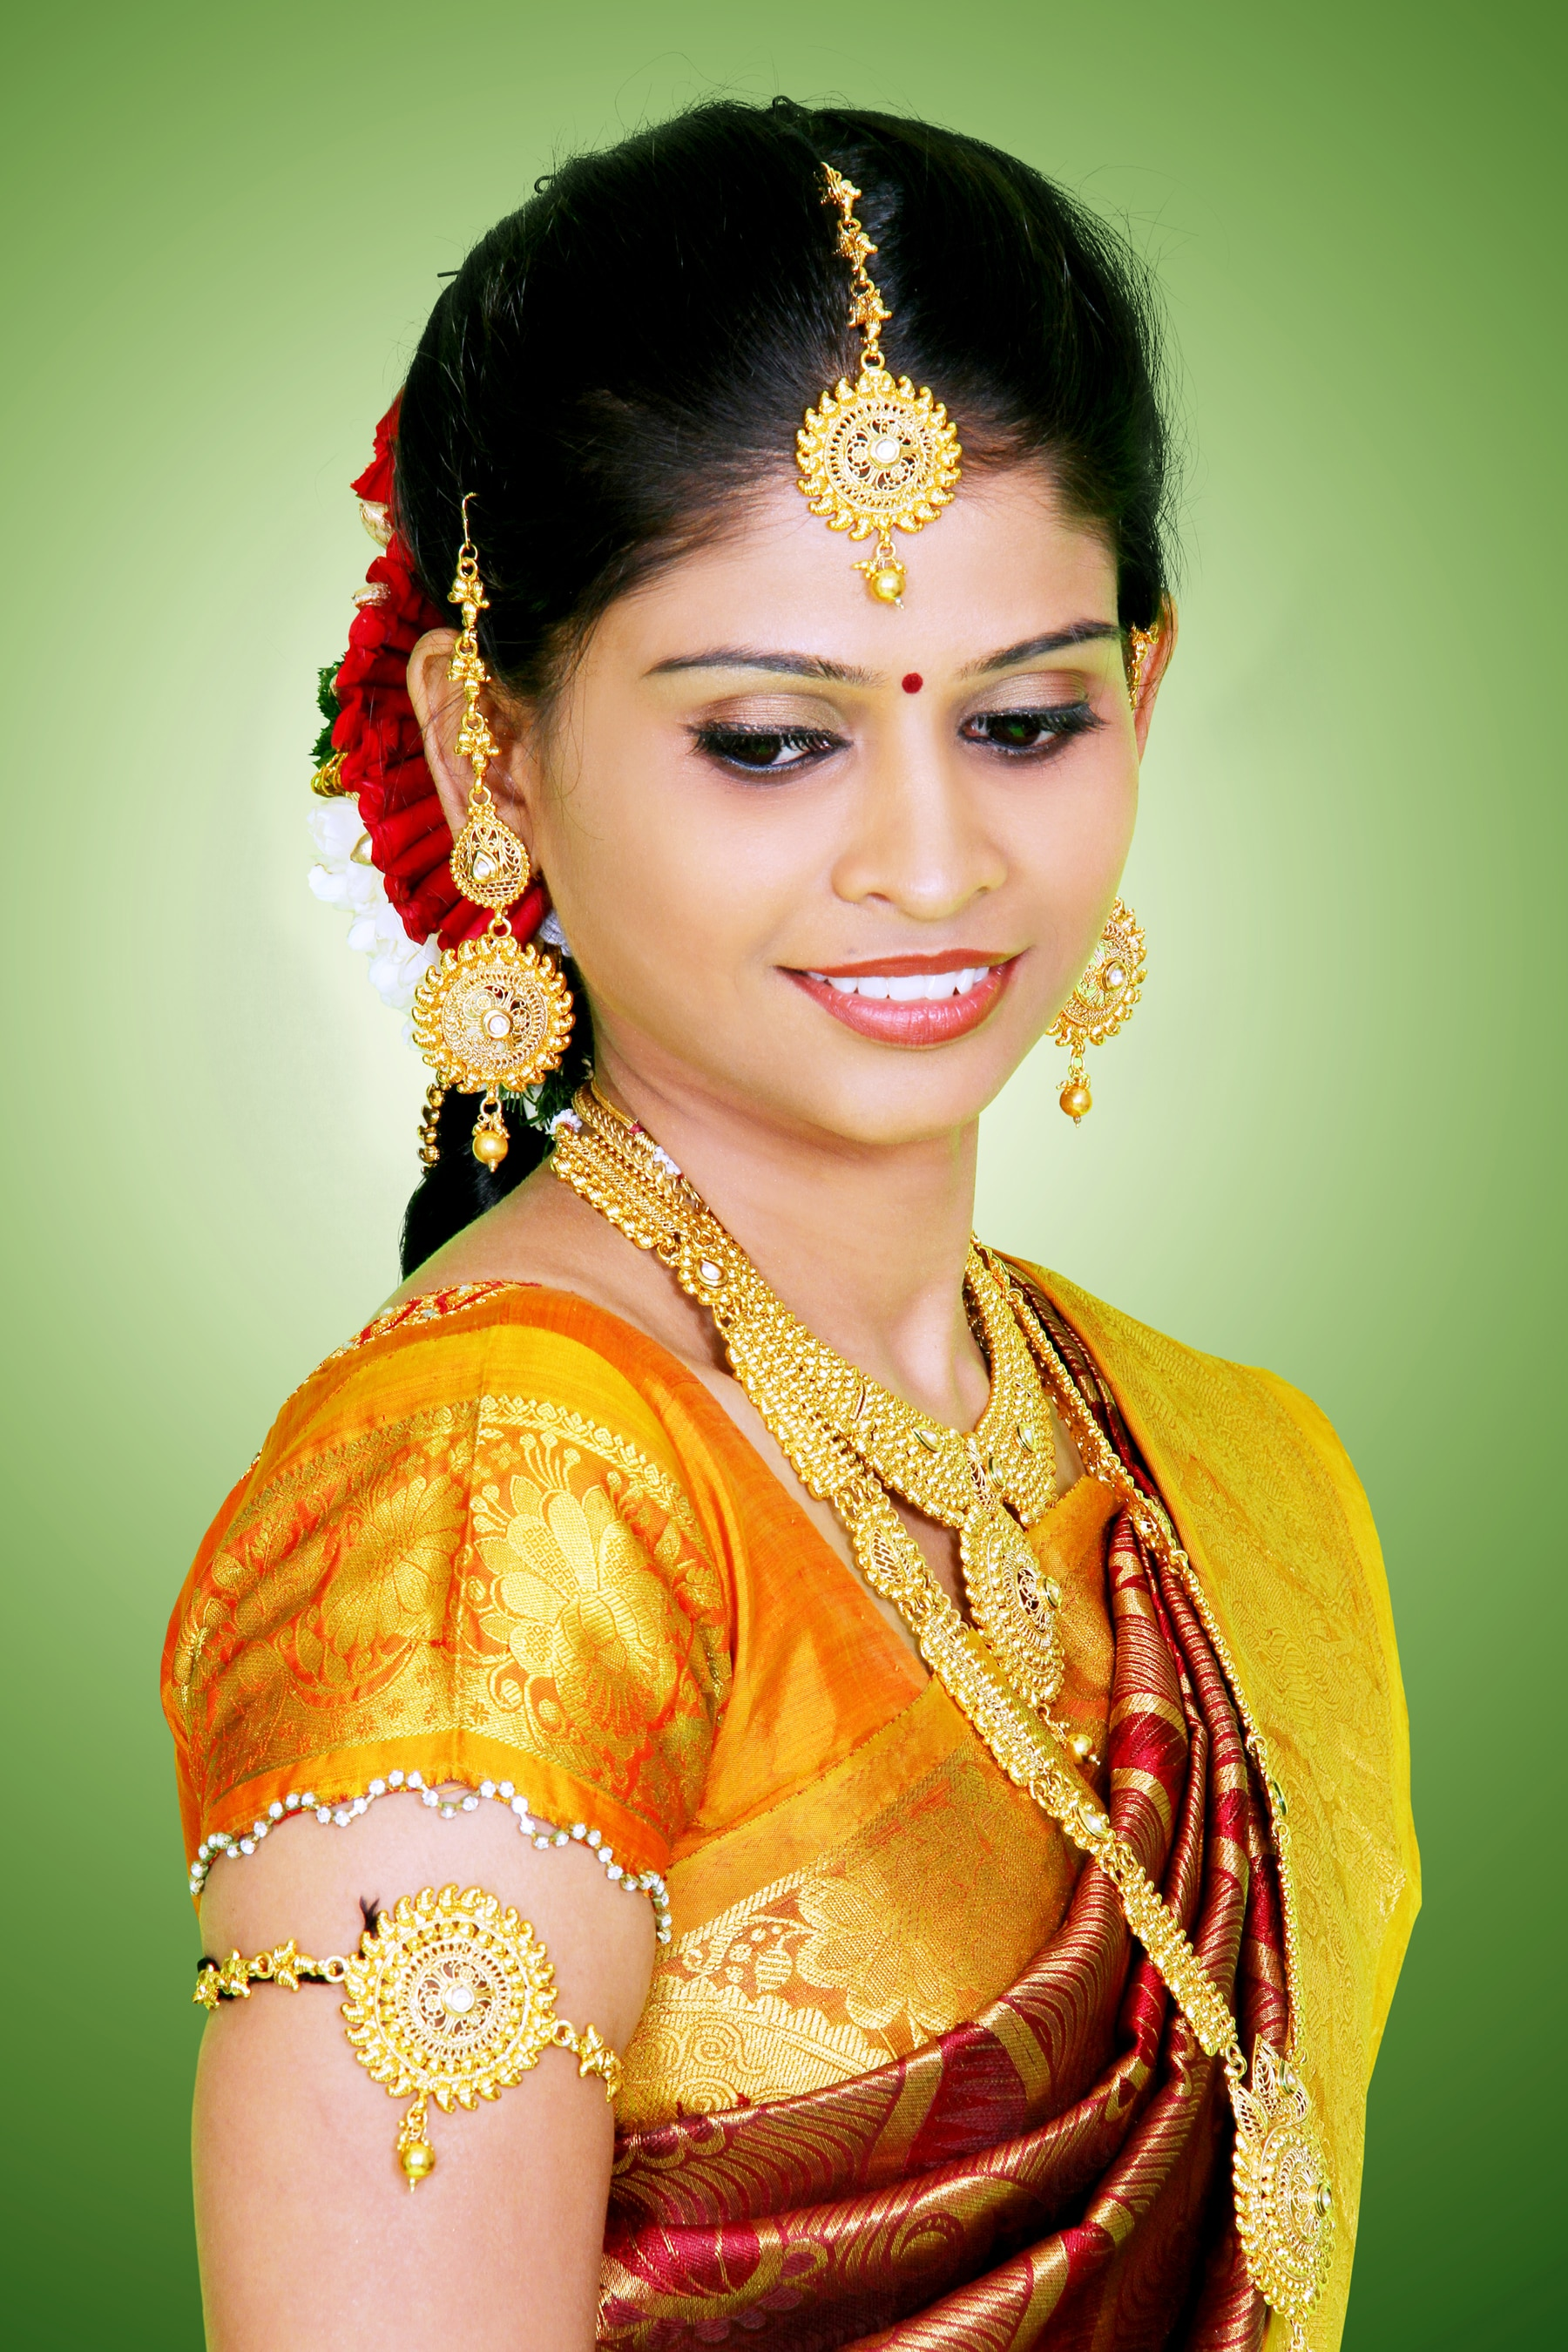 Beaueteck Family Salon we provide Best Service In Bridal Makeup In Coimbatore. Wedding Day Makeup In Coimbatore Makeup For Wedding In Coimbatore More Info www.beaueteck.com